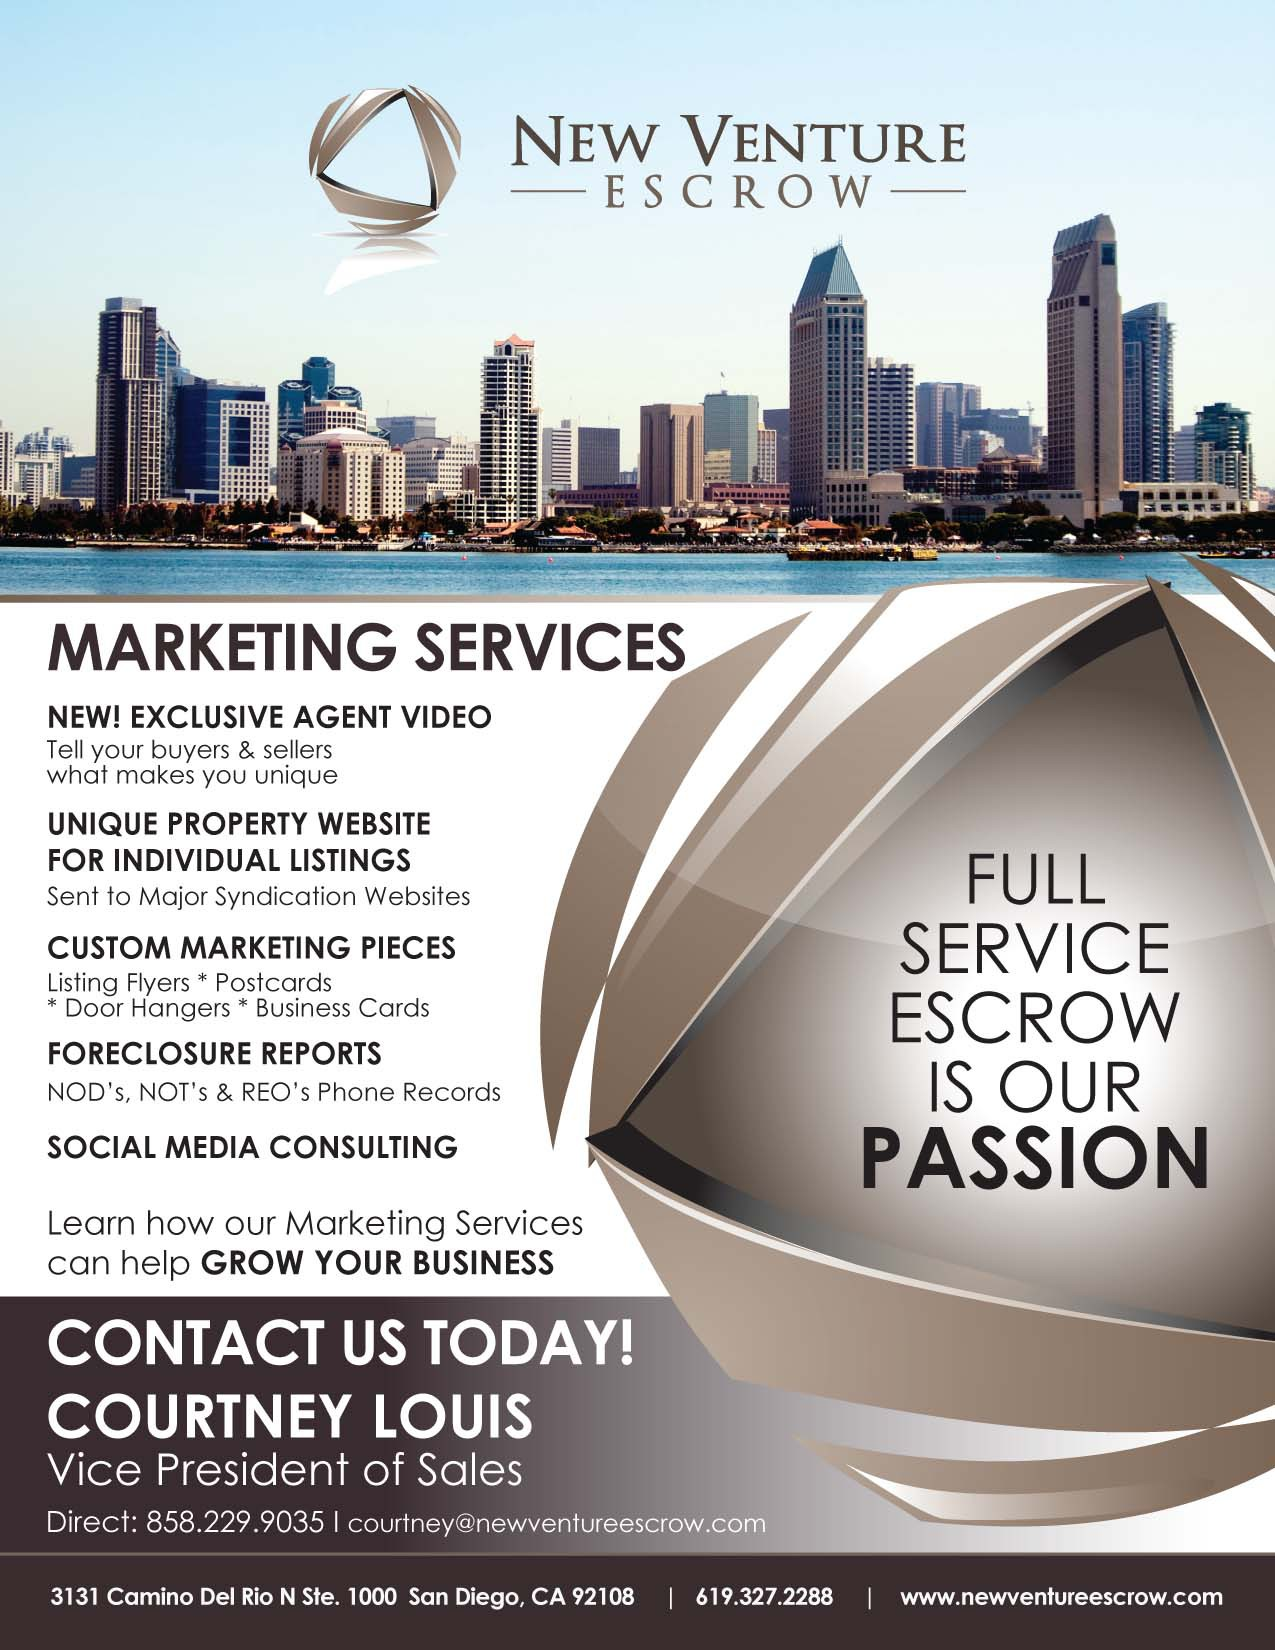 One Page Flyer Re-Design Needed!!!